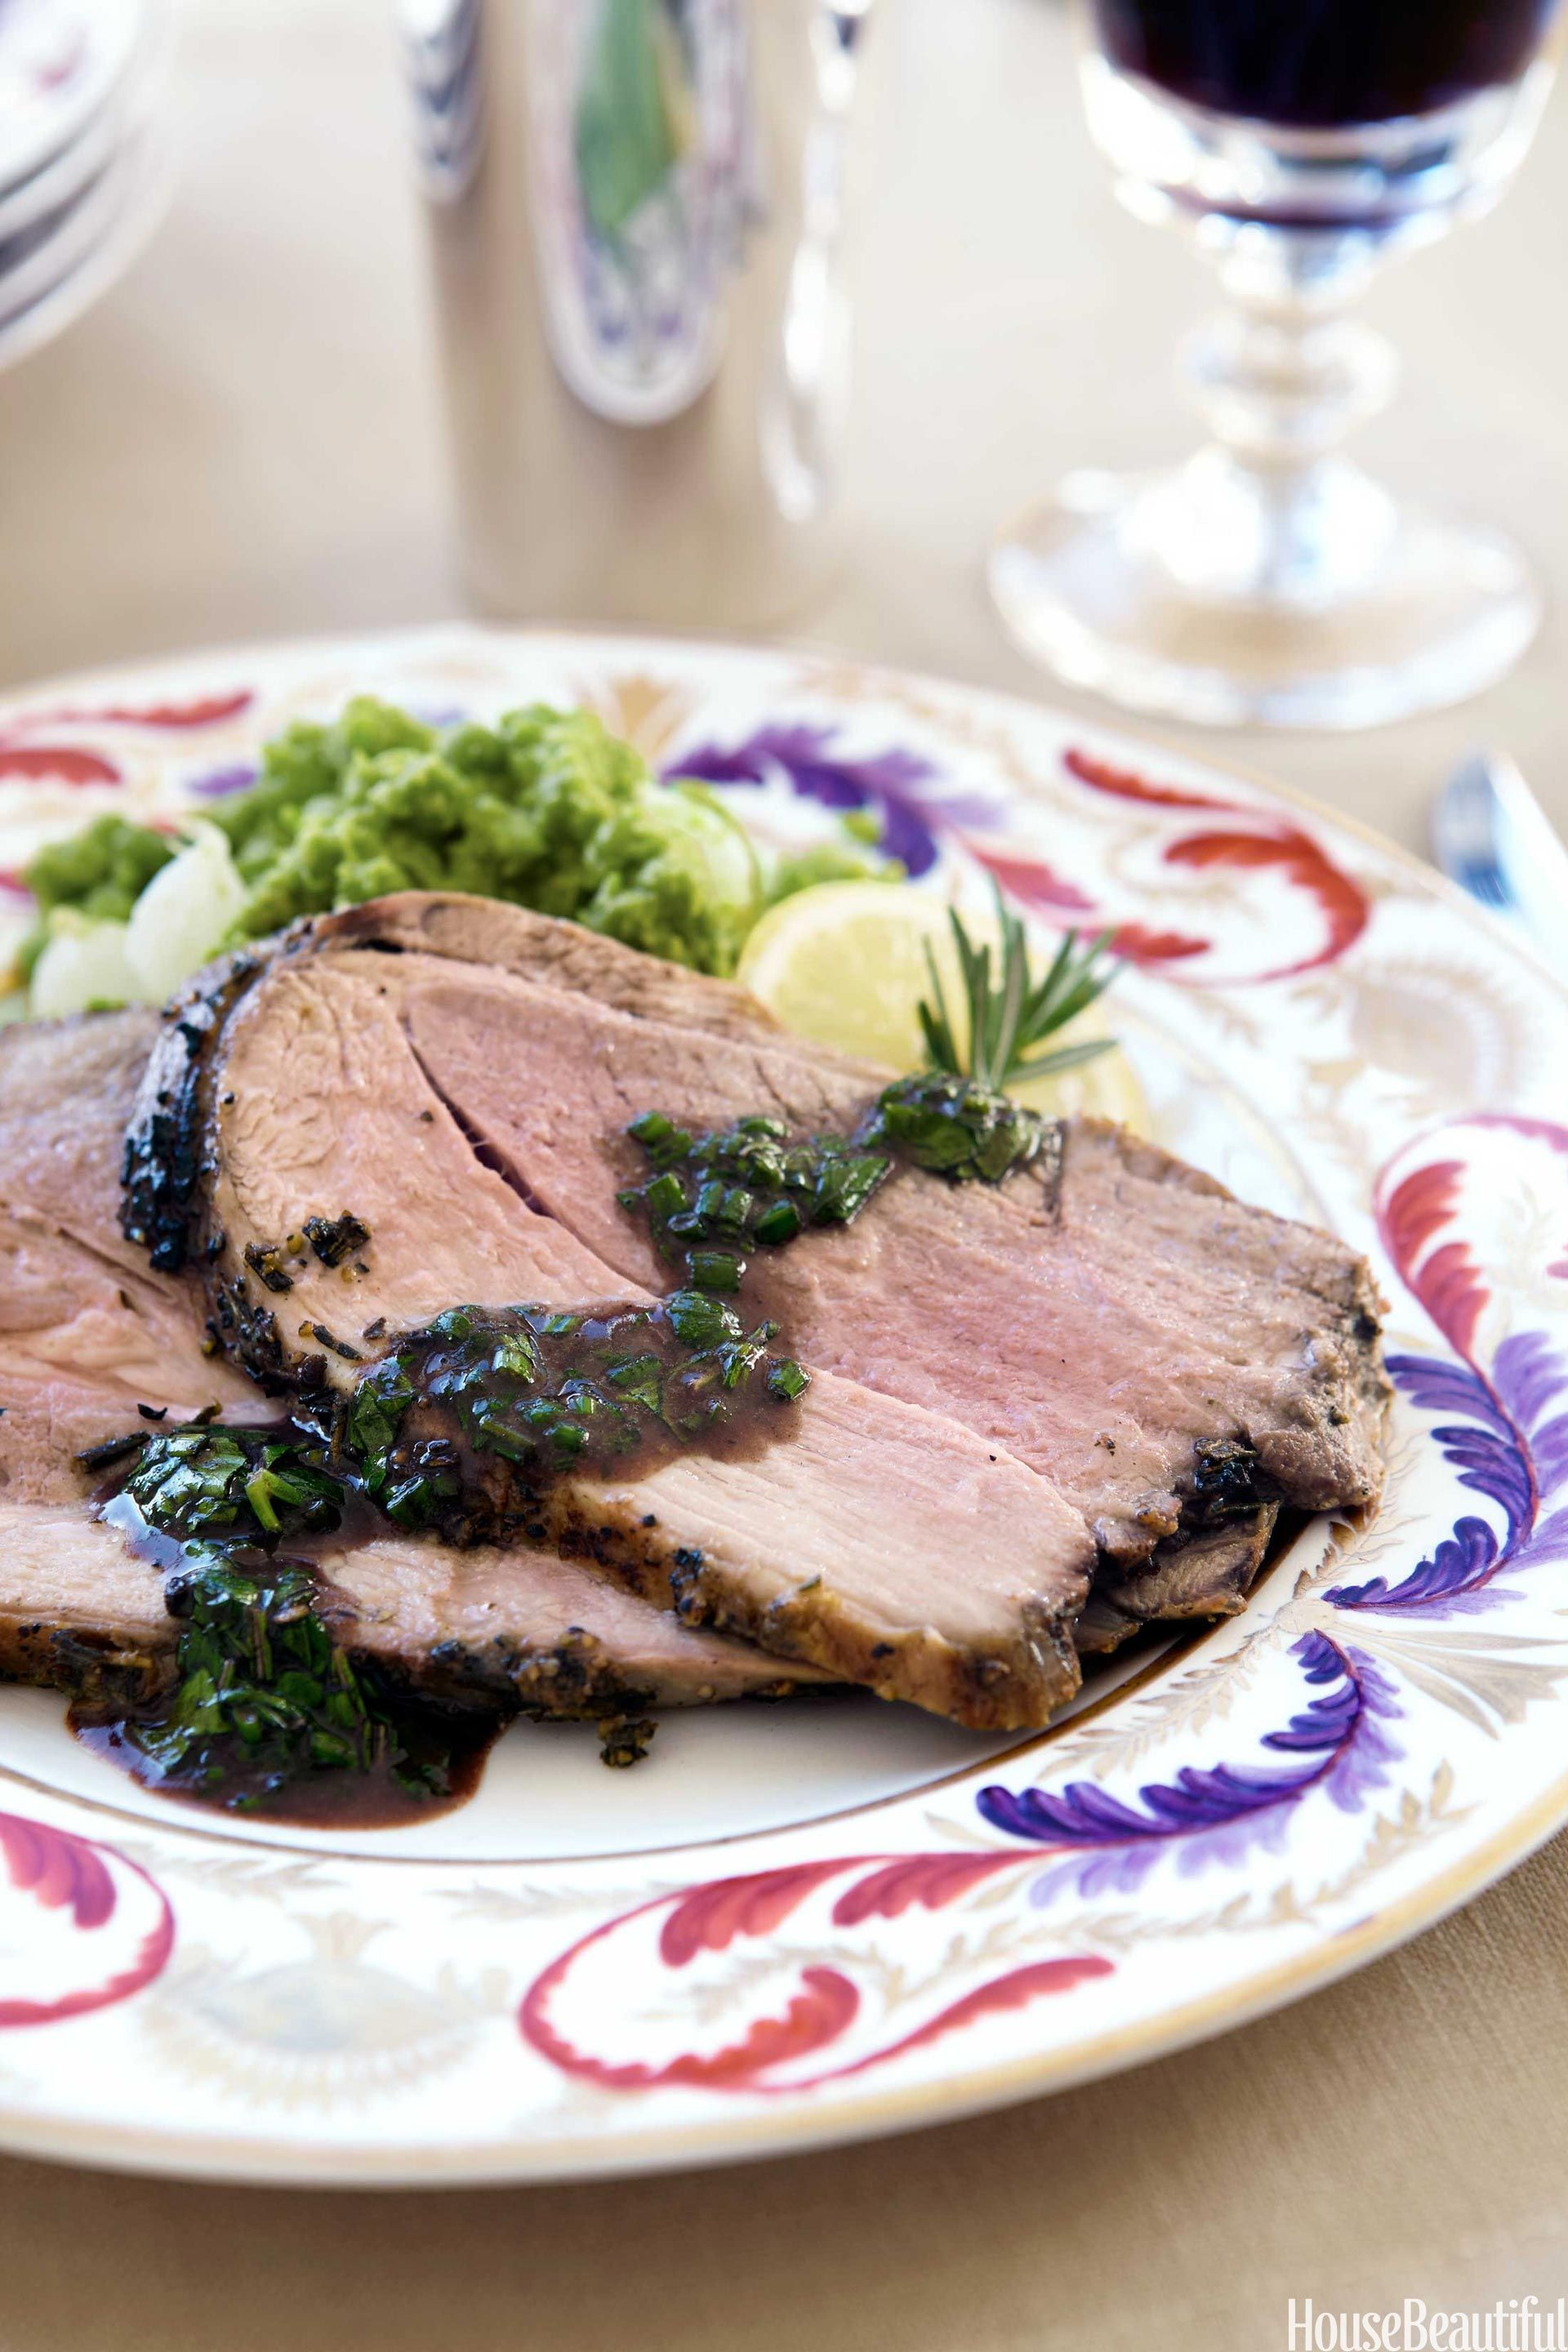 Alex Hitz's Roast Leg of Lamb and Mashed Peas